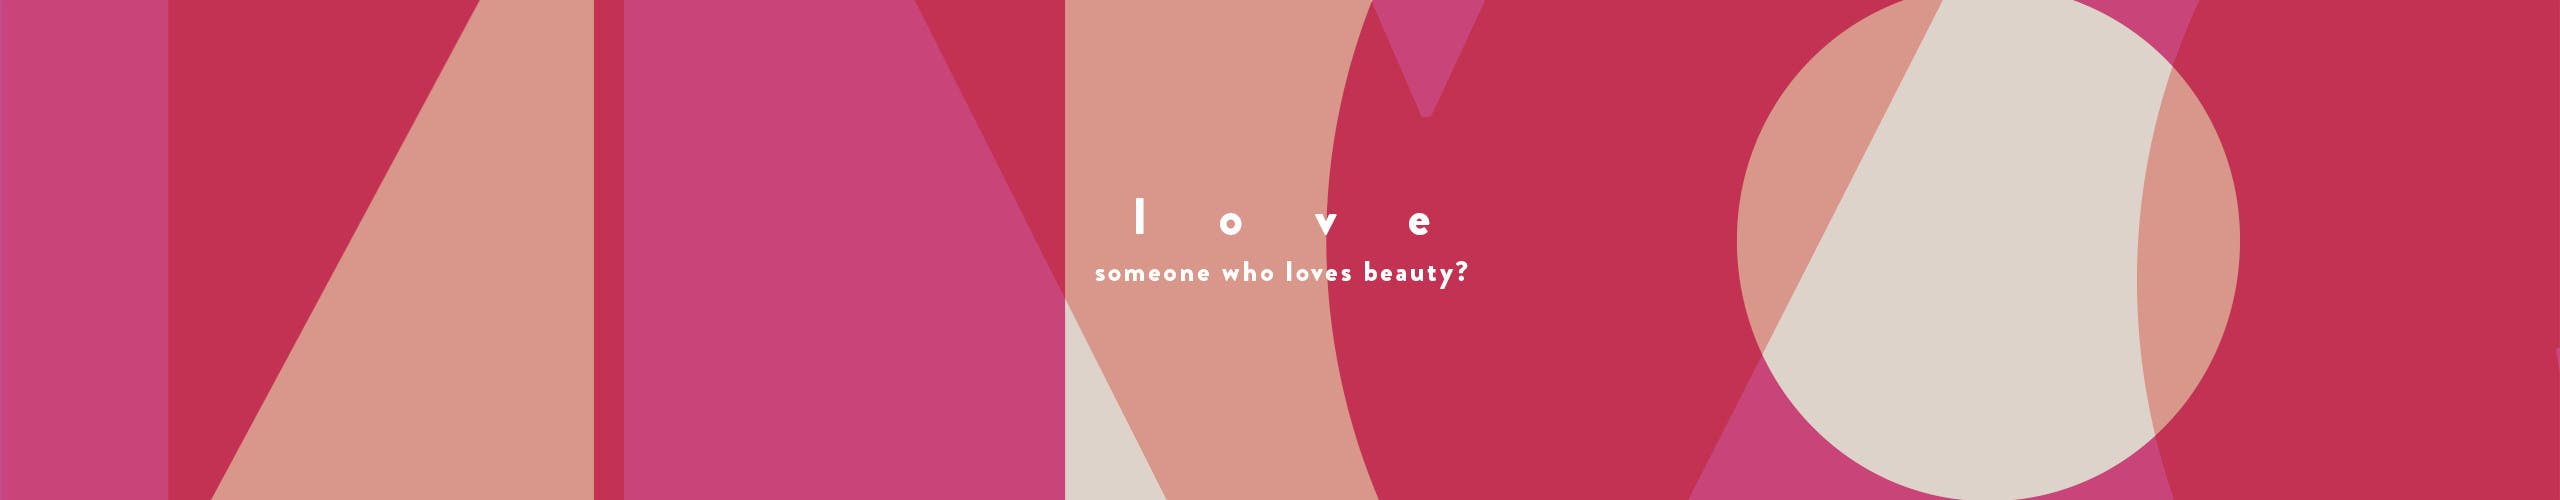 Love someone who loves beauty?